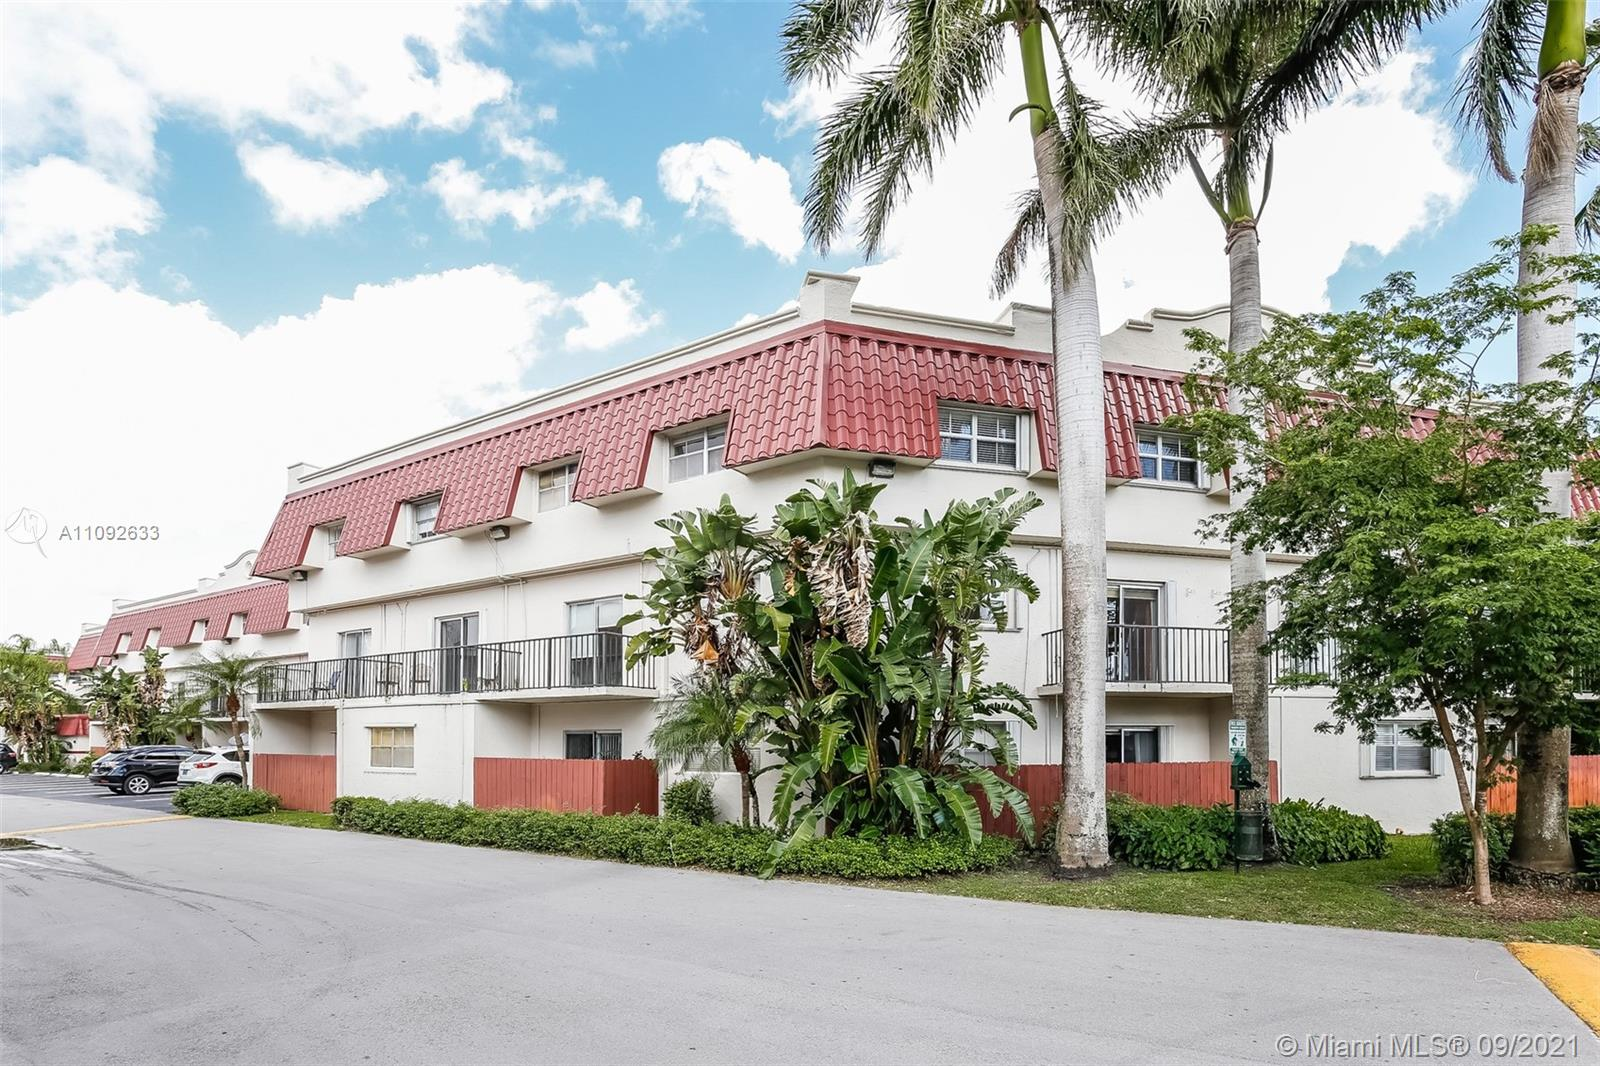 PRIME LOCATION! VILLAS OF PINECREST AT ITS BEST! REMODELED 2 STORY TOWNHOUSE/CONDO, 3 BED/2.5 BATHS, OPEN BALCONY, NEW TILE THRU-OUT. WOOD KIT. CABINETS. UPSCALE IMPORTED CUSTOM MADE STAIRWAY. NEWER WINDOWS, ACCORDION STORM SHUTTERS, A/C & STACKABLE WASHER/DRYER LIKE NEW. COMMUNITY POOL, EXERCISE RM, GUARD GATED, 24 HR SECURITY, TENNIS COURTS…MINUTES TO SHOPPING, RESTAURANTS, UNIV. OF MIAMI, METRORAIL, & MORE. CLOSE TO BEST SCHOOLS OF PINECREST. A RARE FIND!